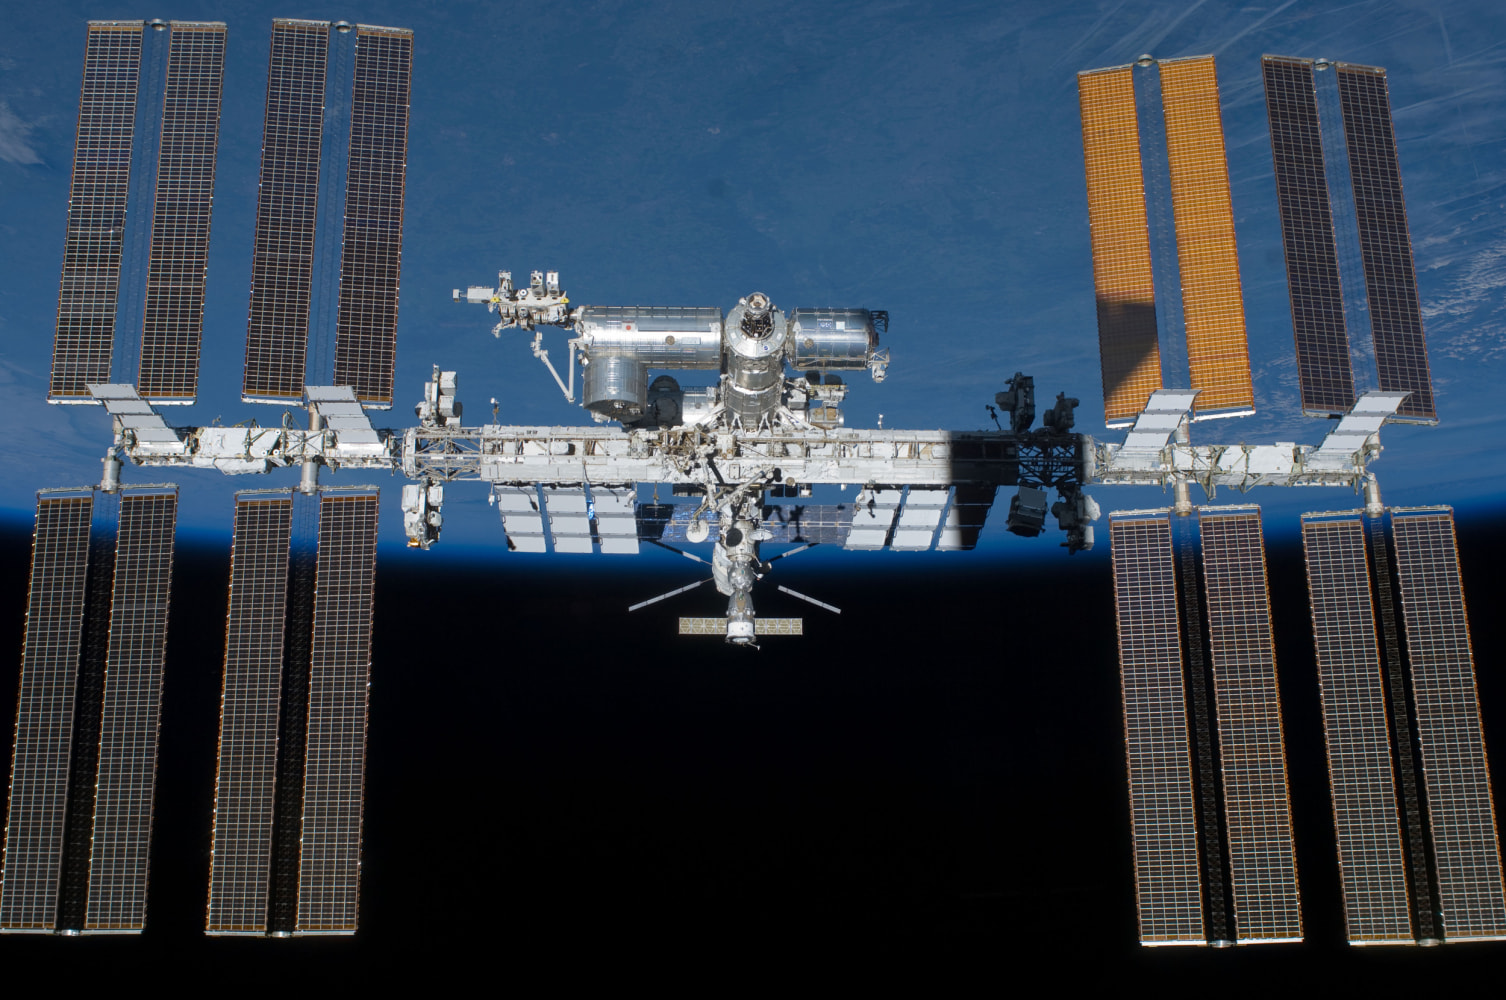 NASA and its international partners completed assembly of the International Space Station in the fall of 2011. NASA